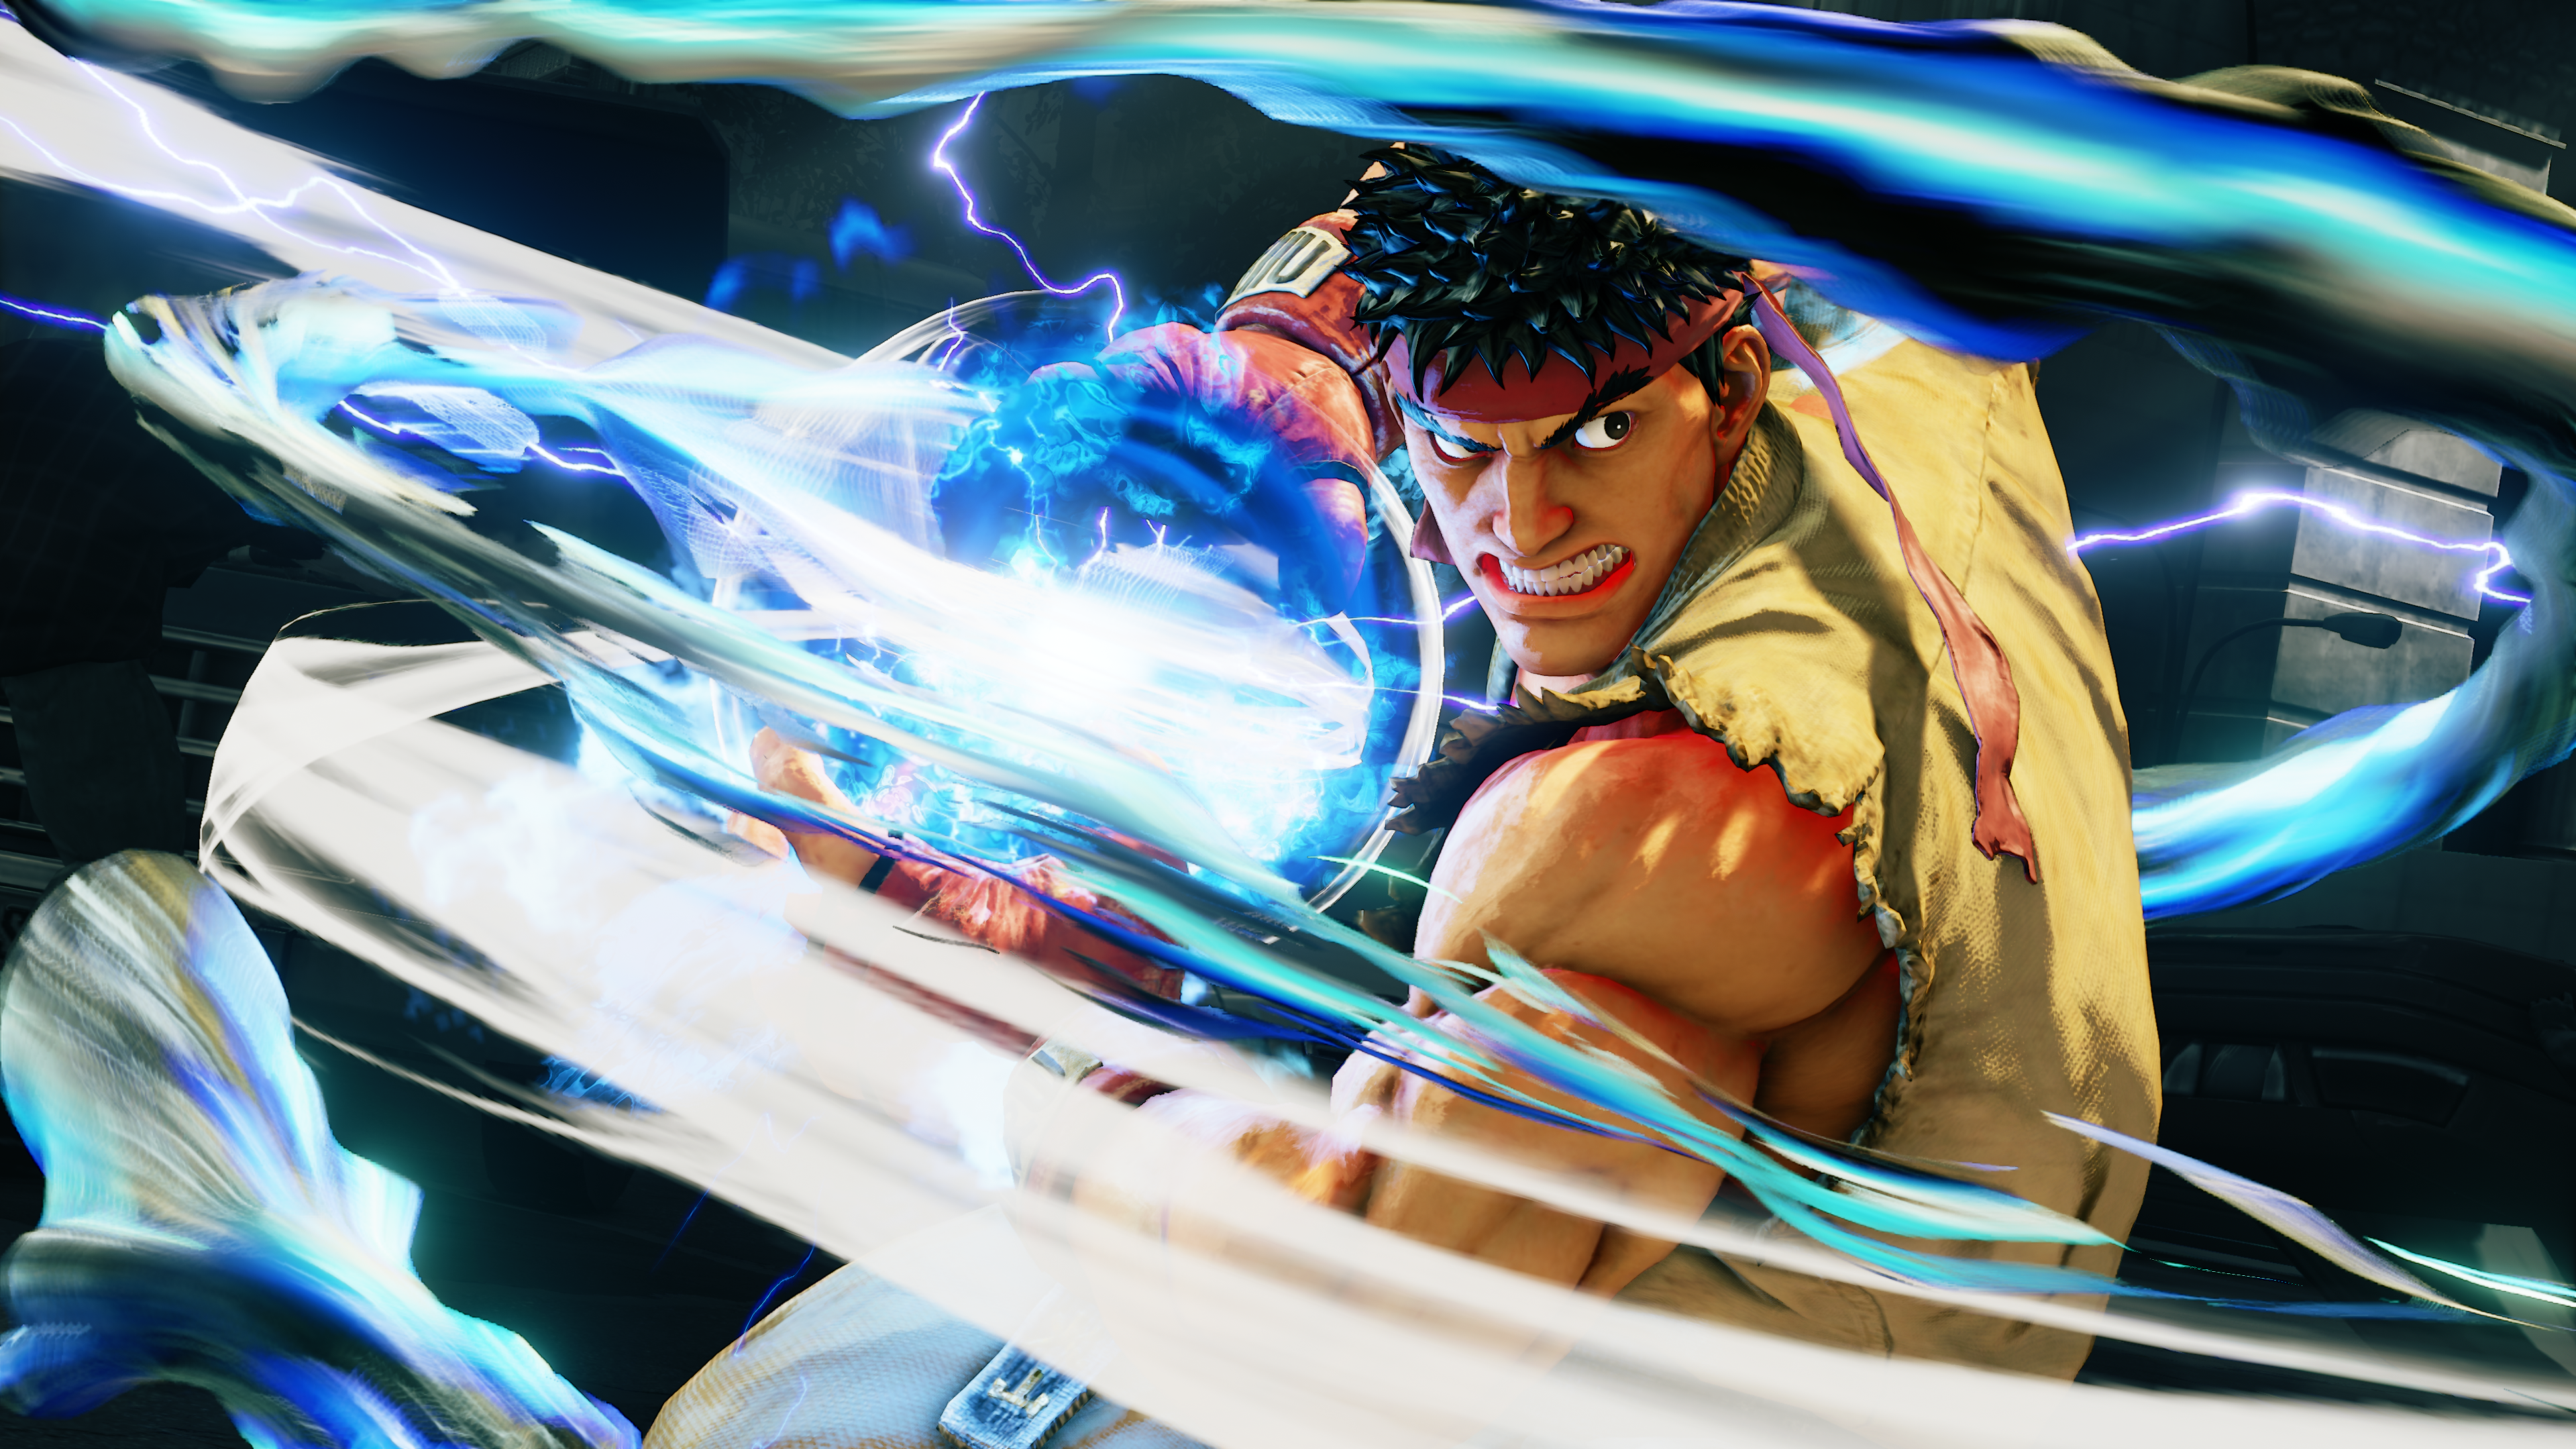 90 street fighter v hd wallpapers | background images - wallpaper abyss